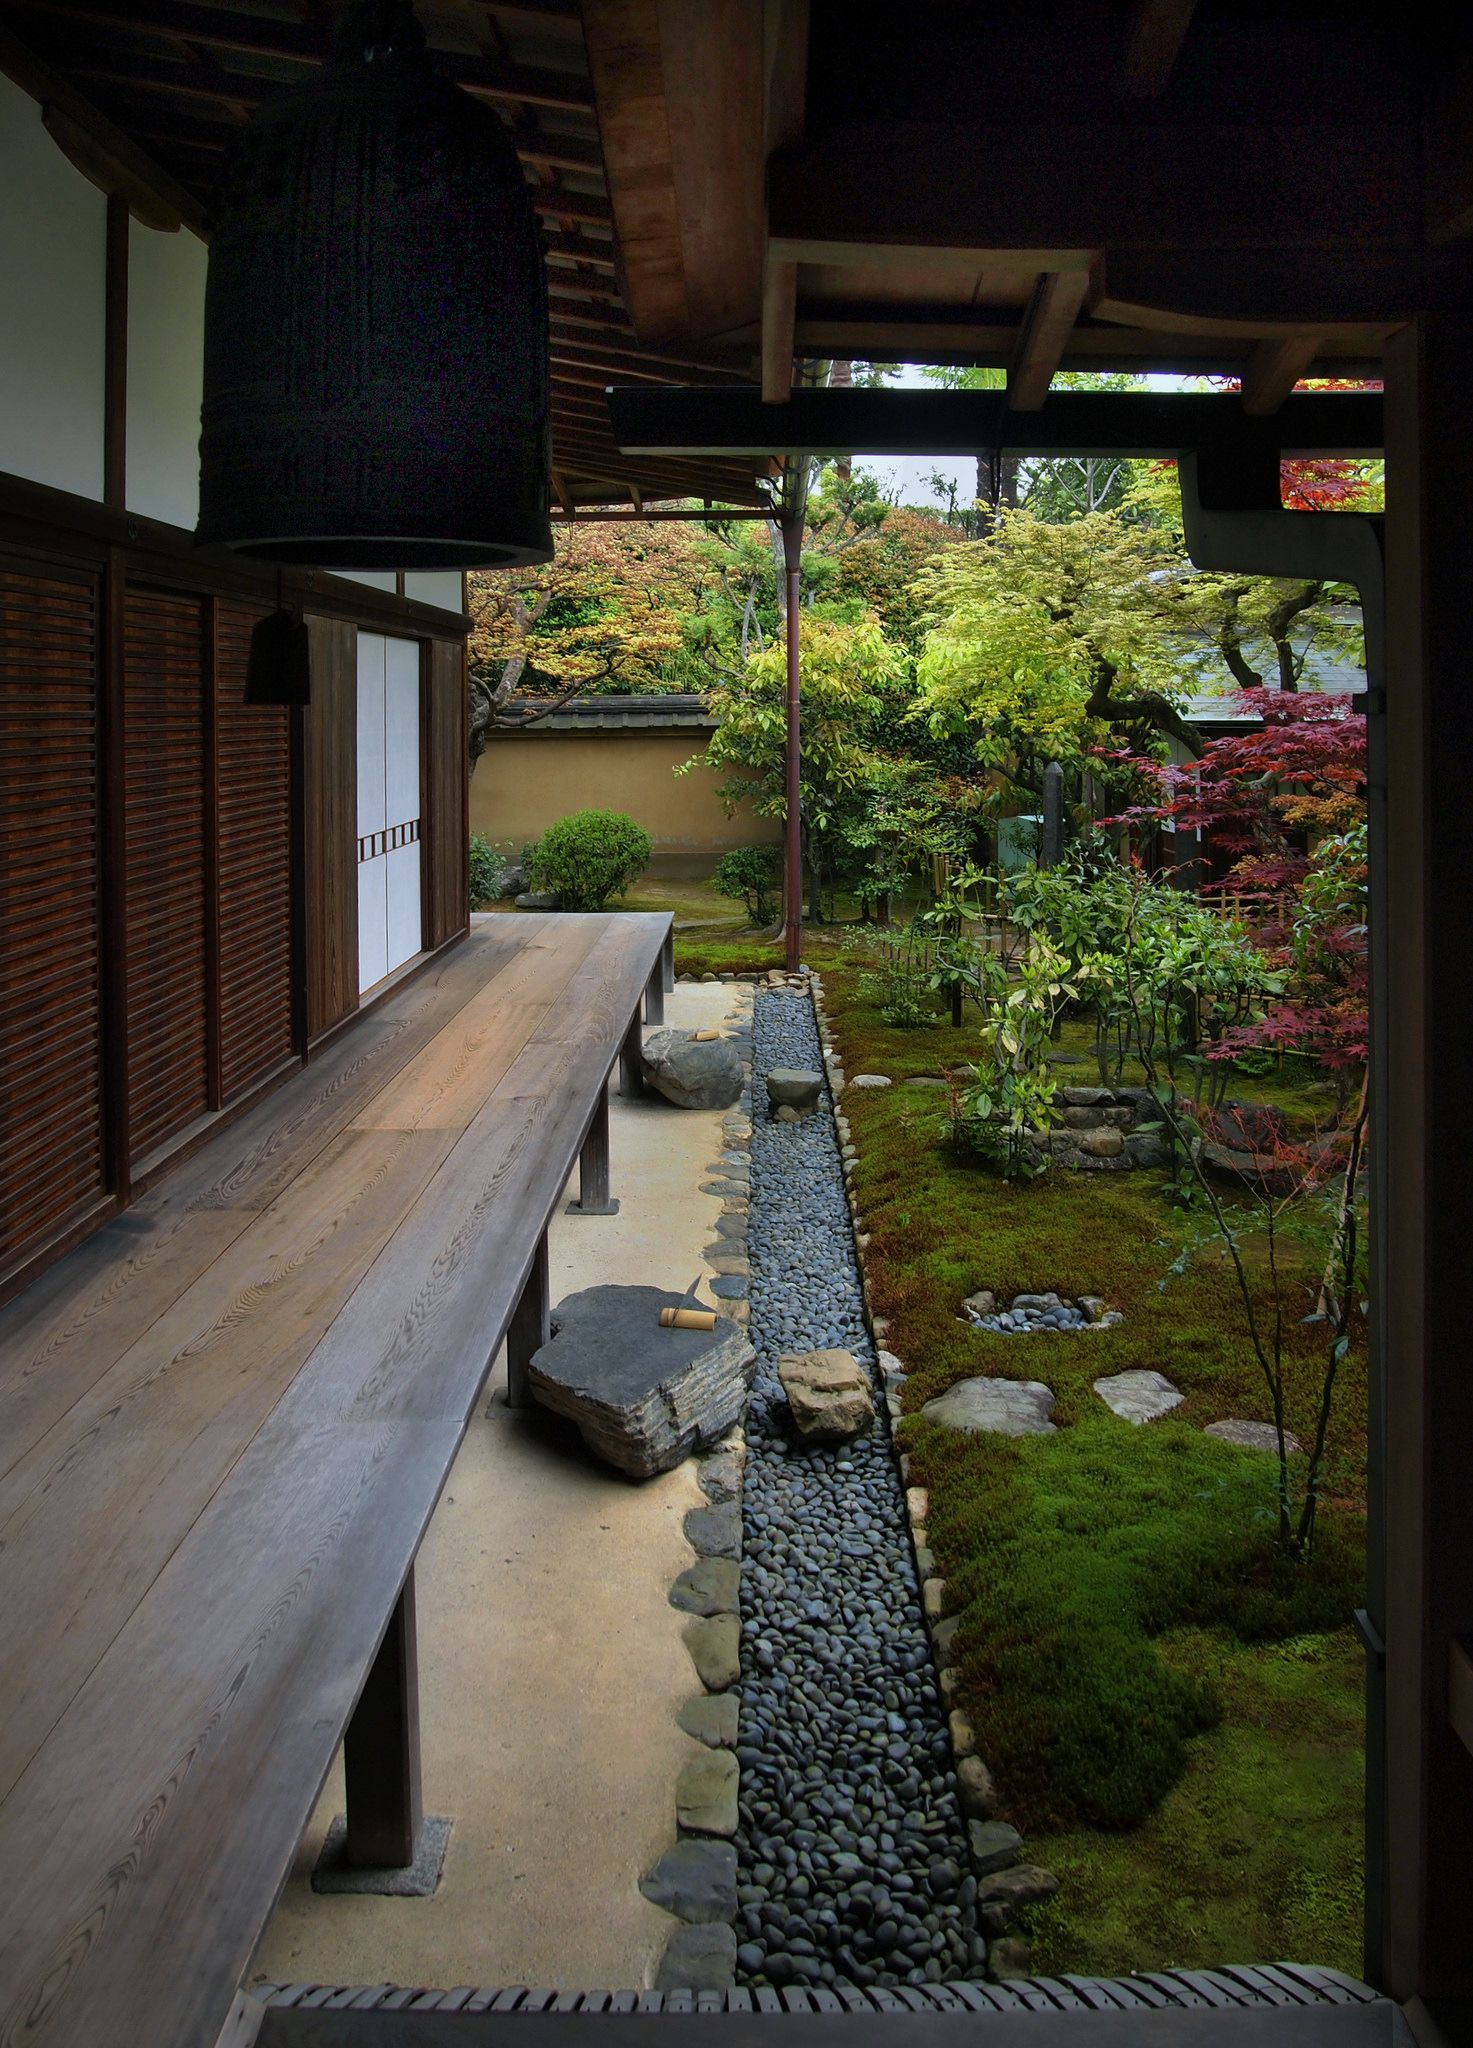 Buddhist Ceremony Traditional Japanese Garden: Japanese Gardens, Architecture